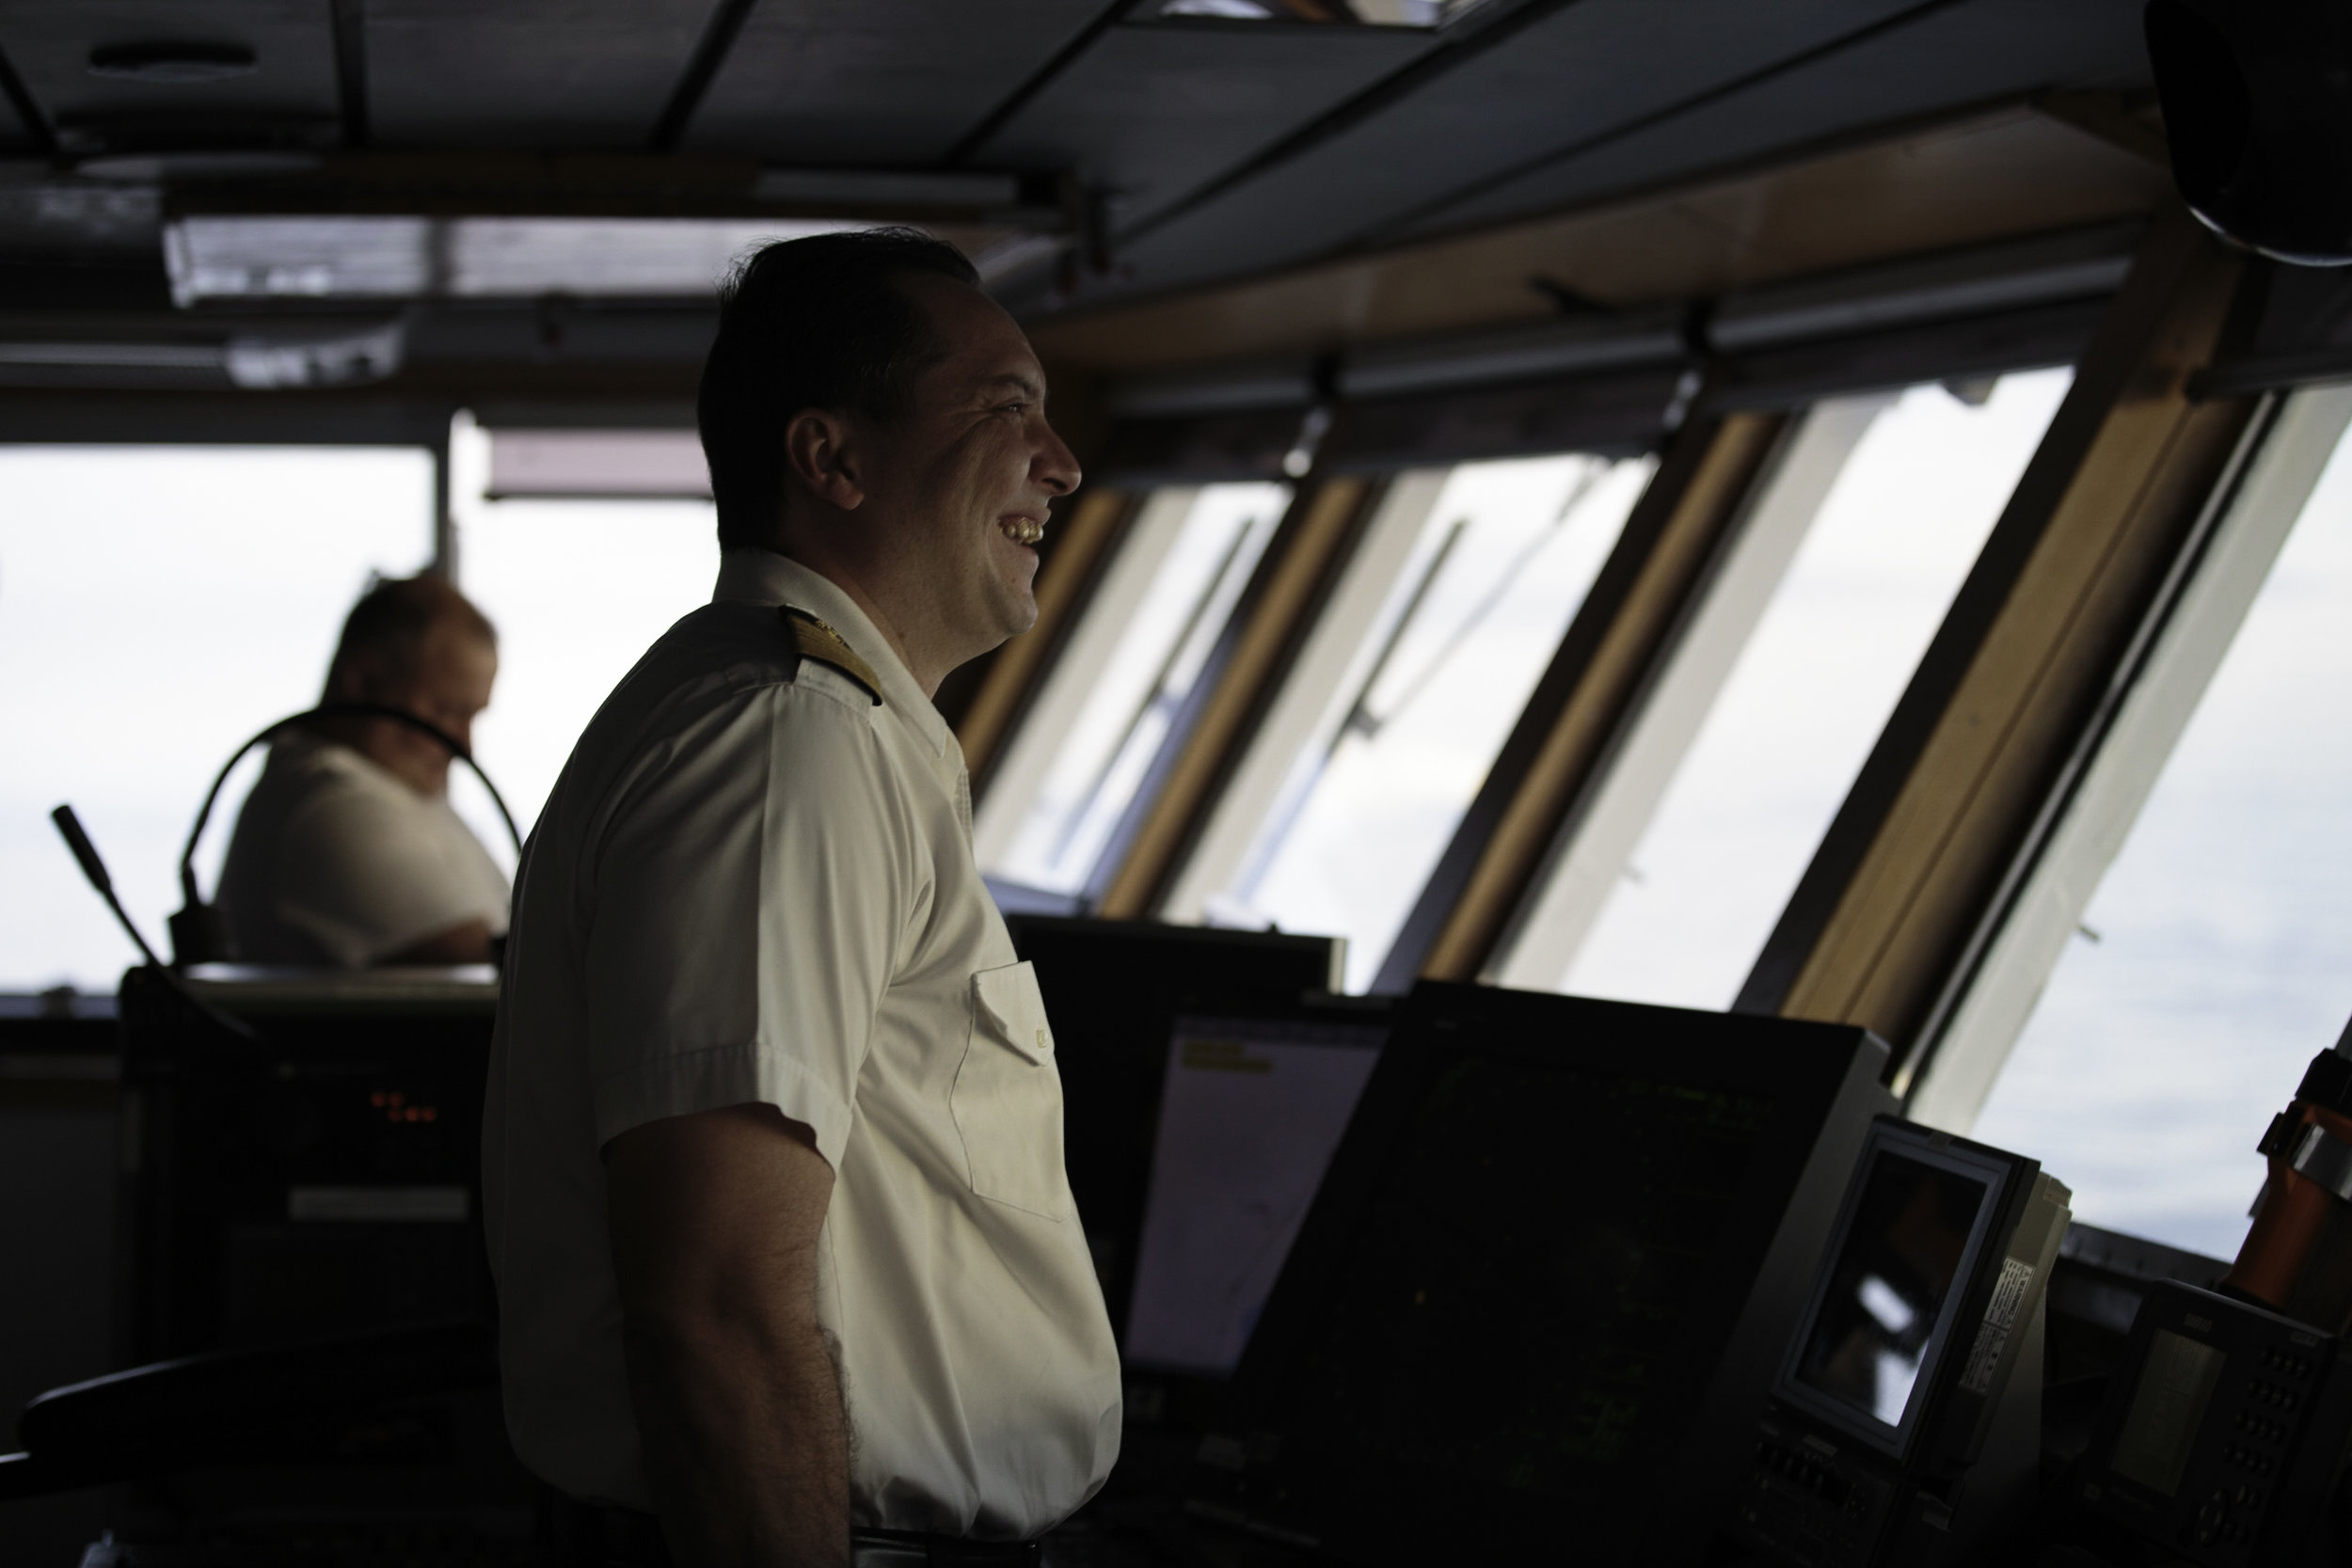 Captain Barios, from Panama, cracks a joke with the Chief Engineer from Ukraine.